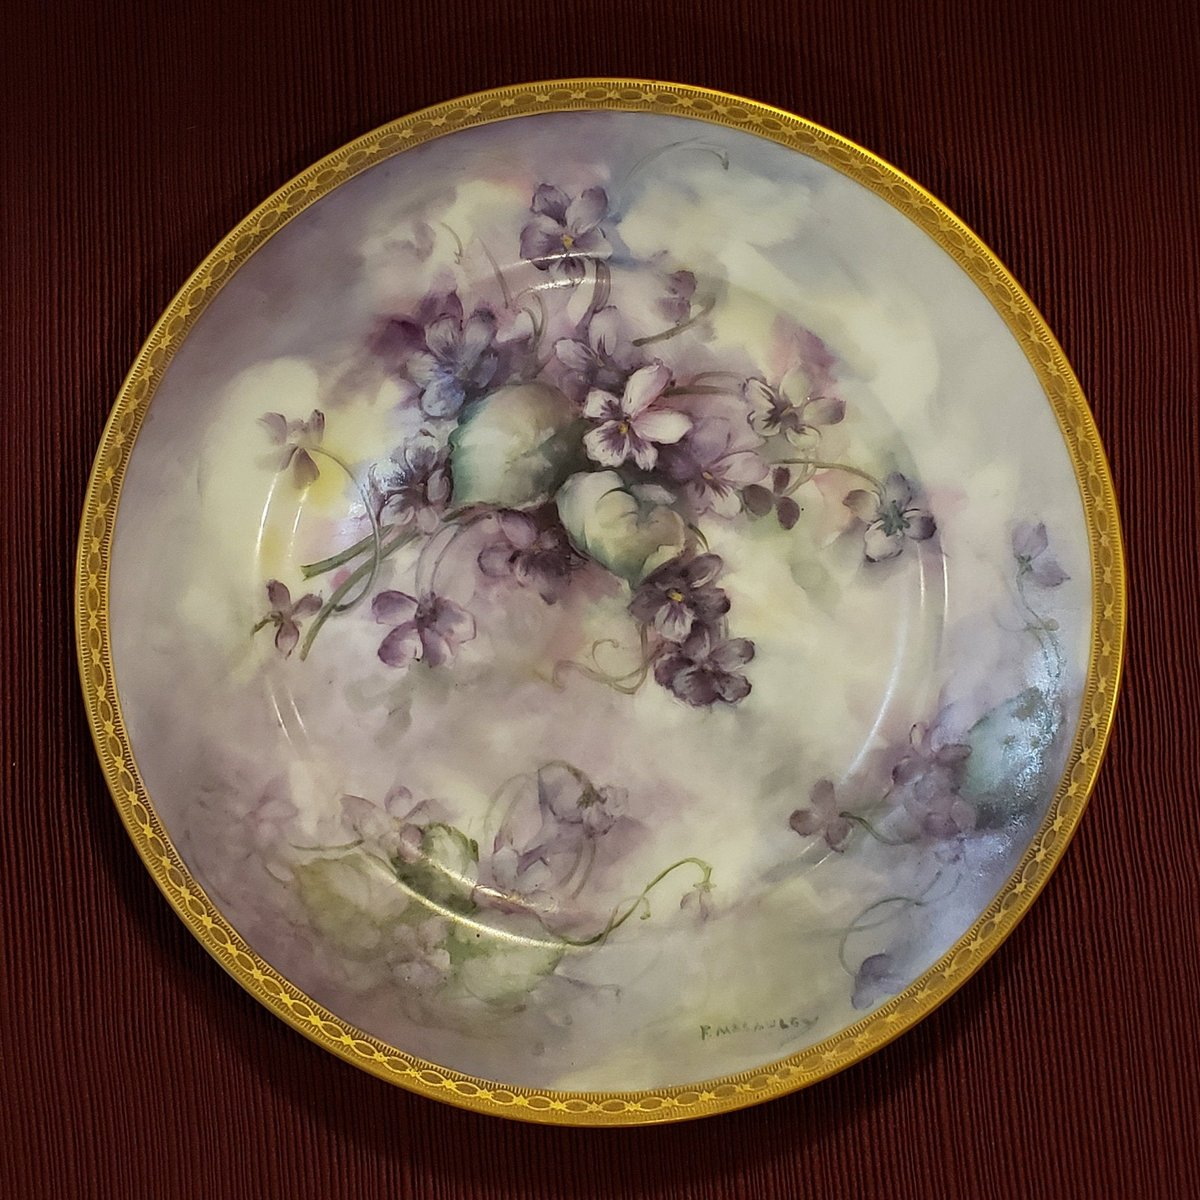 Vintage Theodore Haviland Limoges Purple Flower Decorative Plate With Patterned Gold Band That Was Made In France and Designed by F Macawley https://t.co/iWTlFpvjgR #AtticEsoterica #Etsy #Collectibles #Antiques #Vintage #DecorativePlate https://t.co/iFo7weGLoP